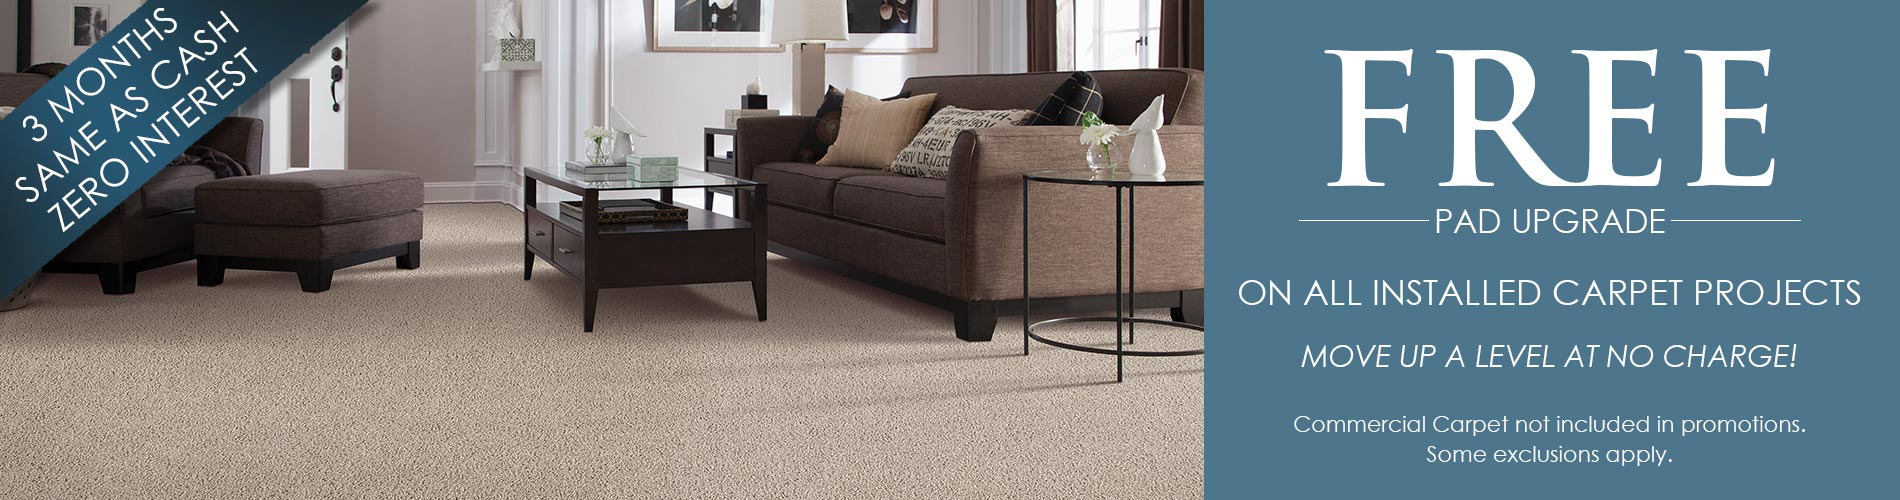 Free pad upgrade on all installed carpet projects!